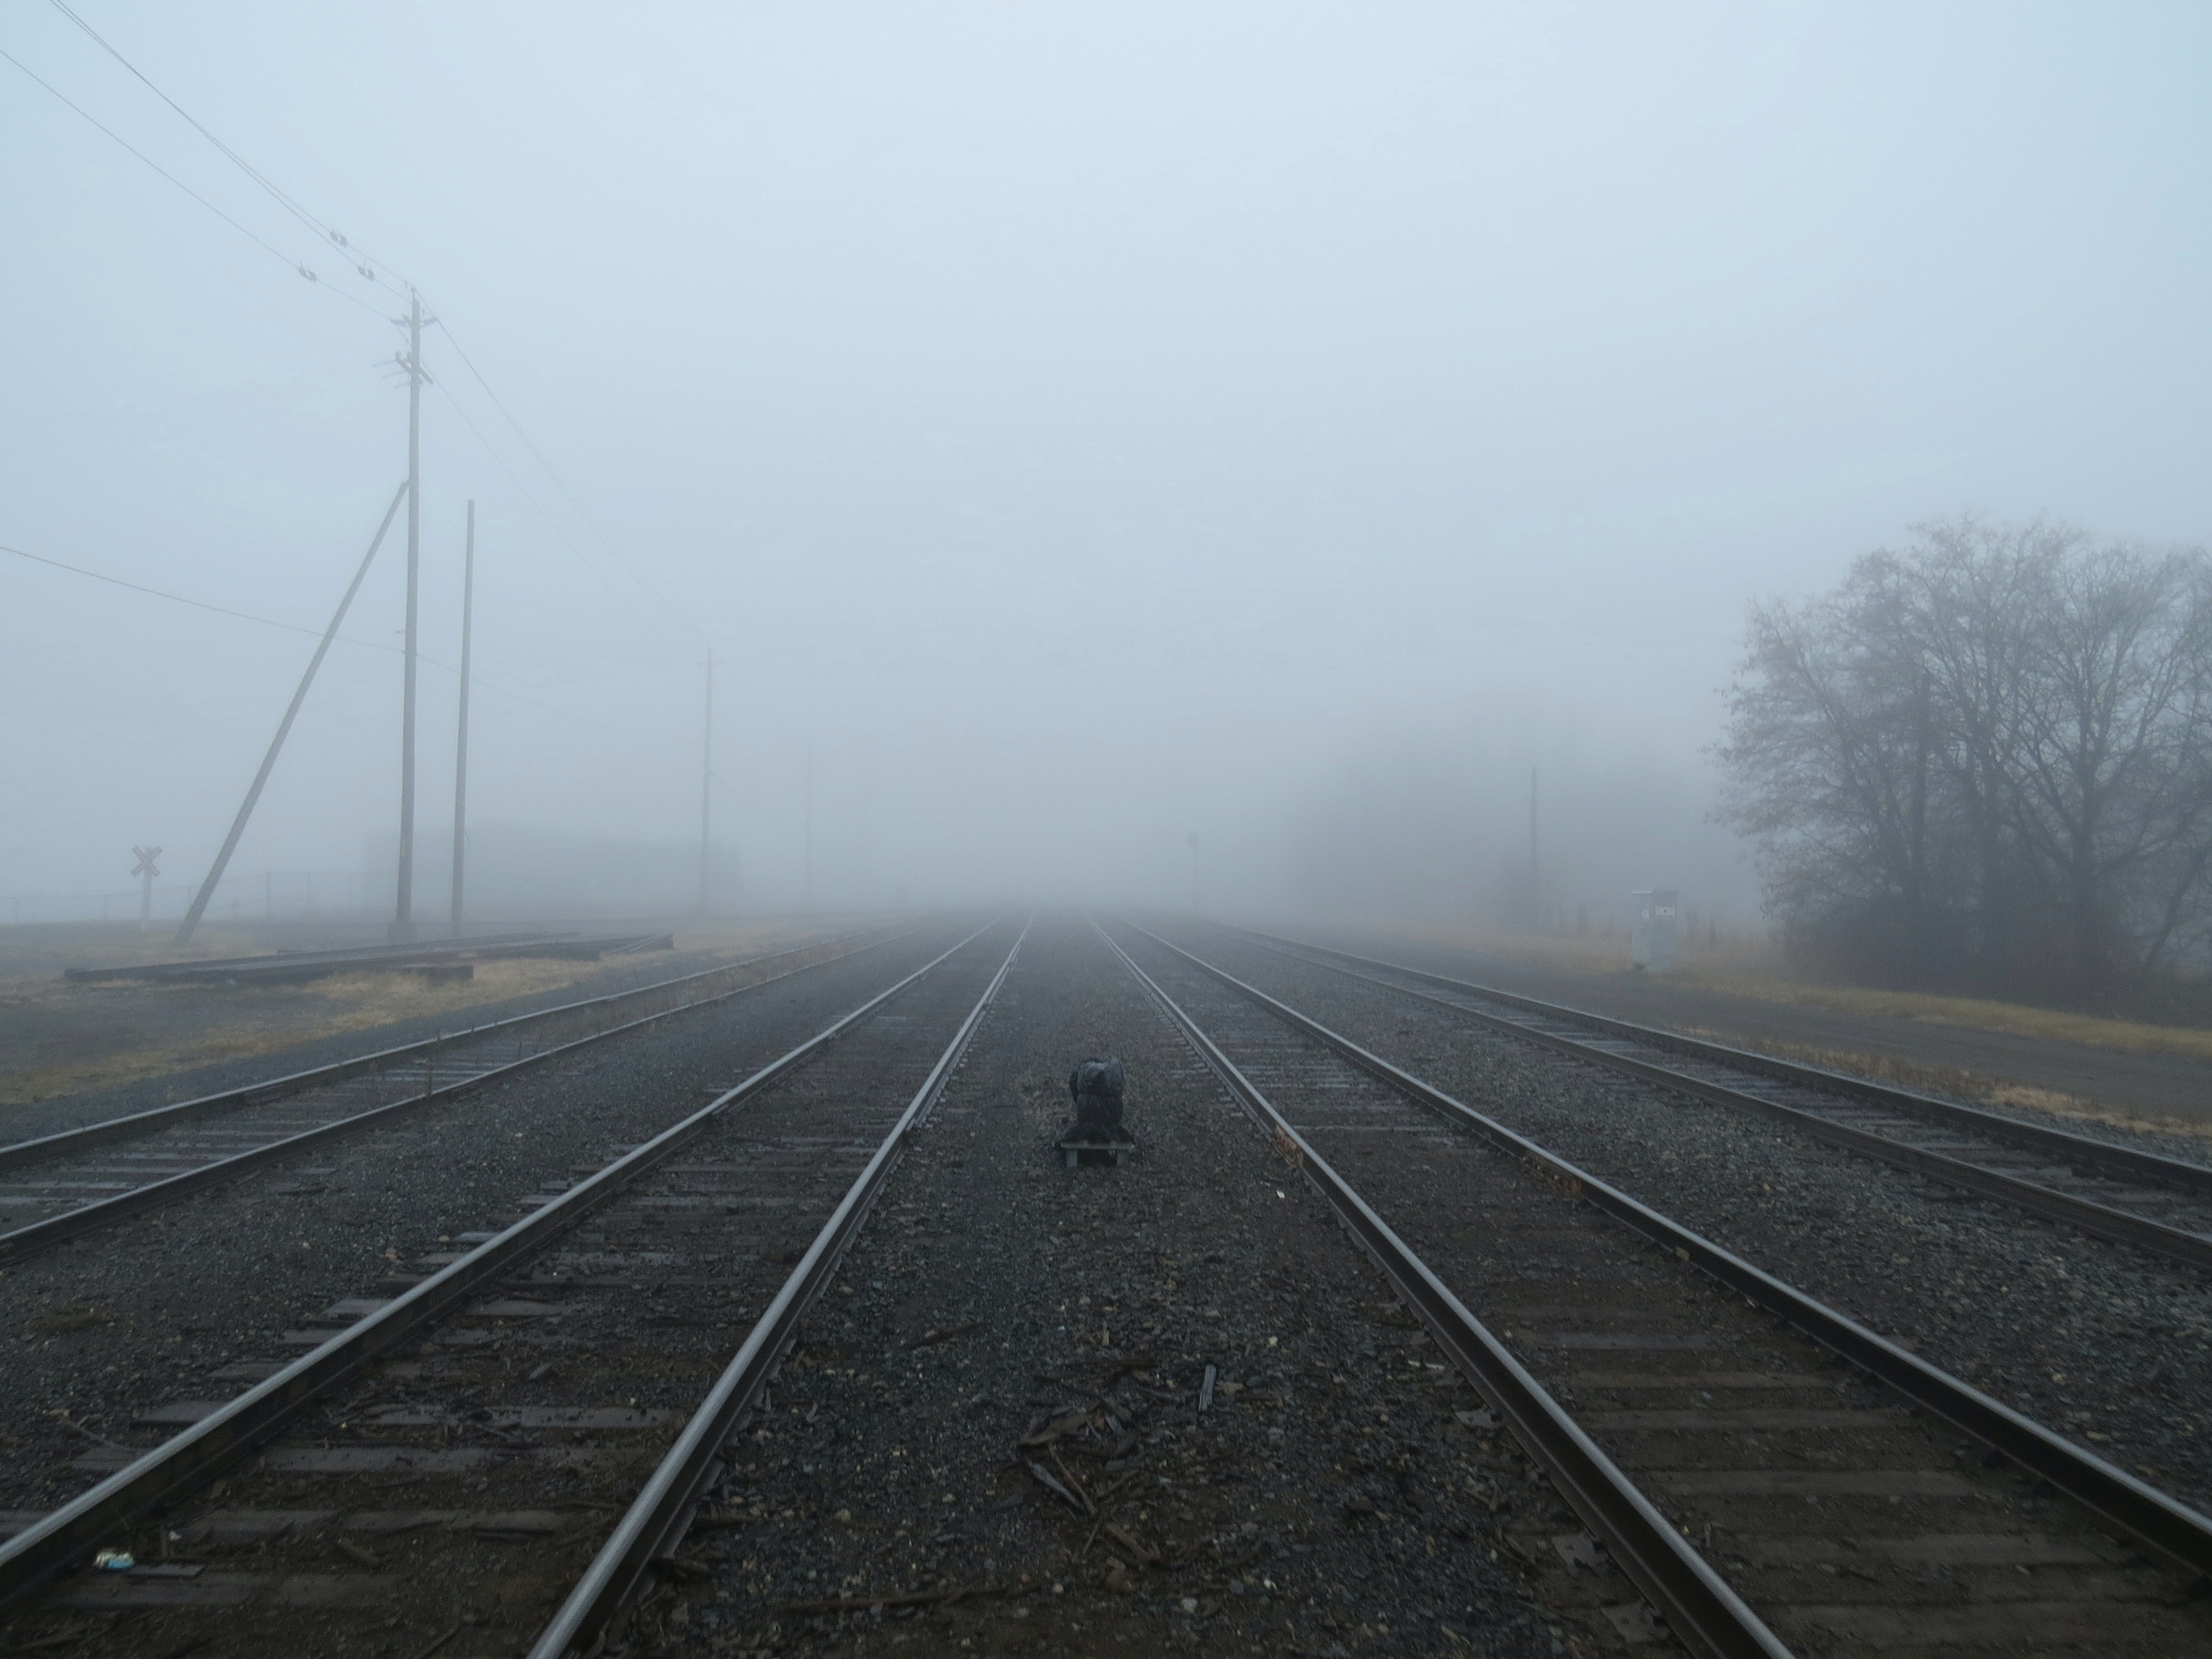 Low trains visibility.